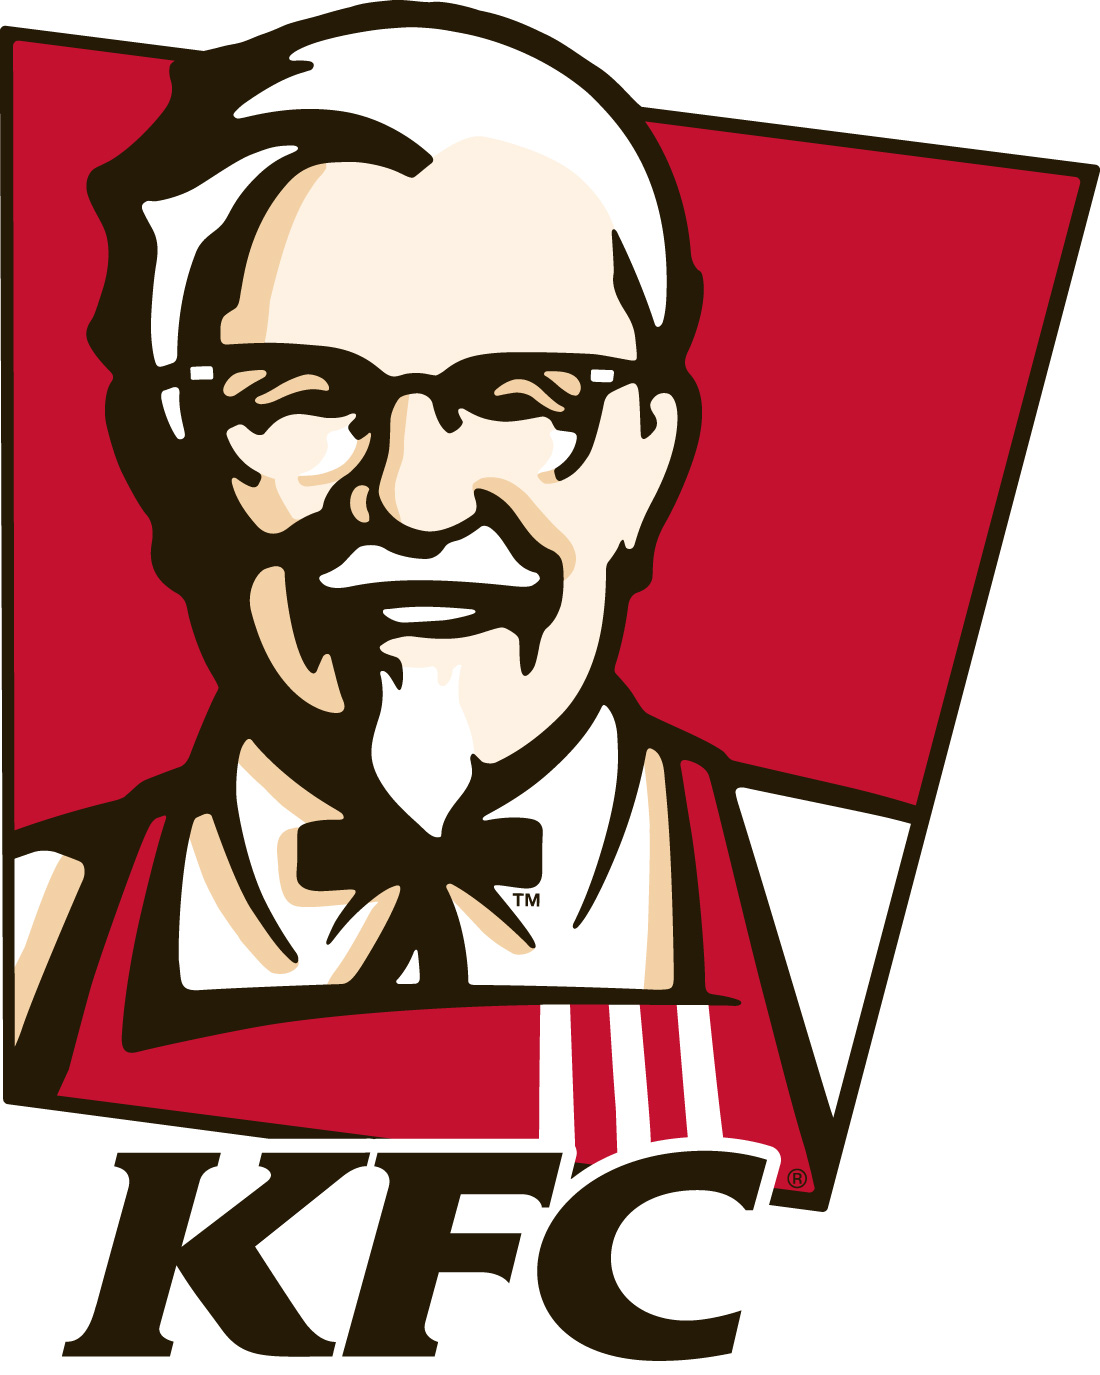 What font is that? KFC????